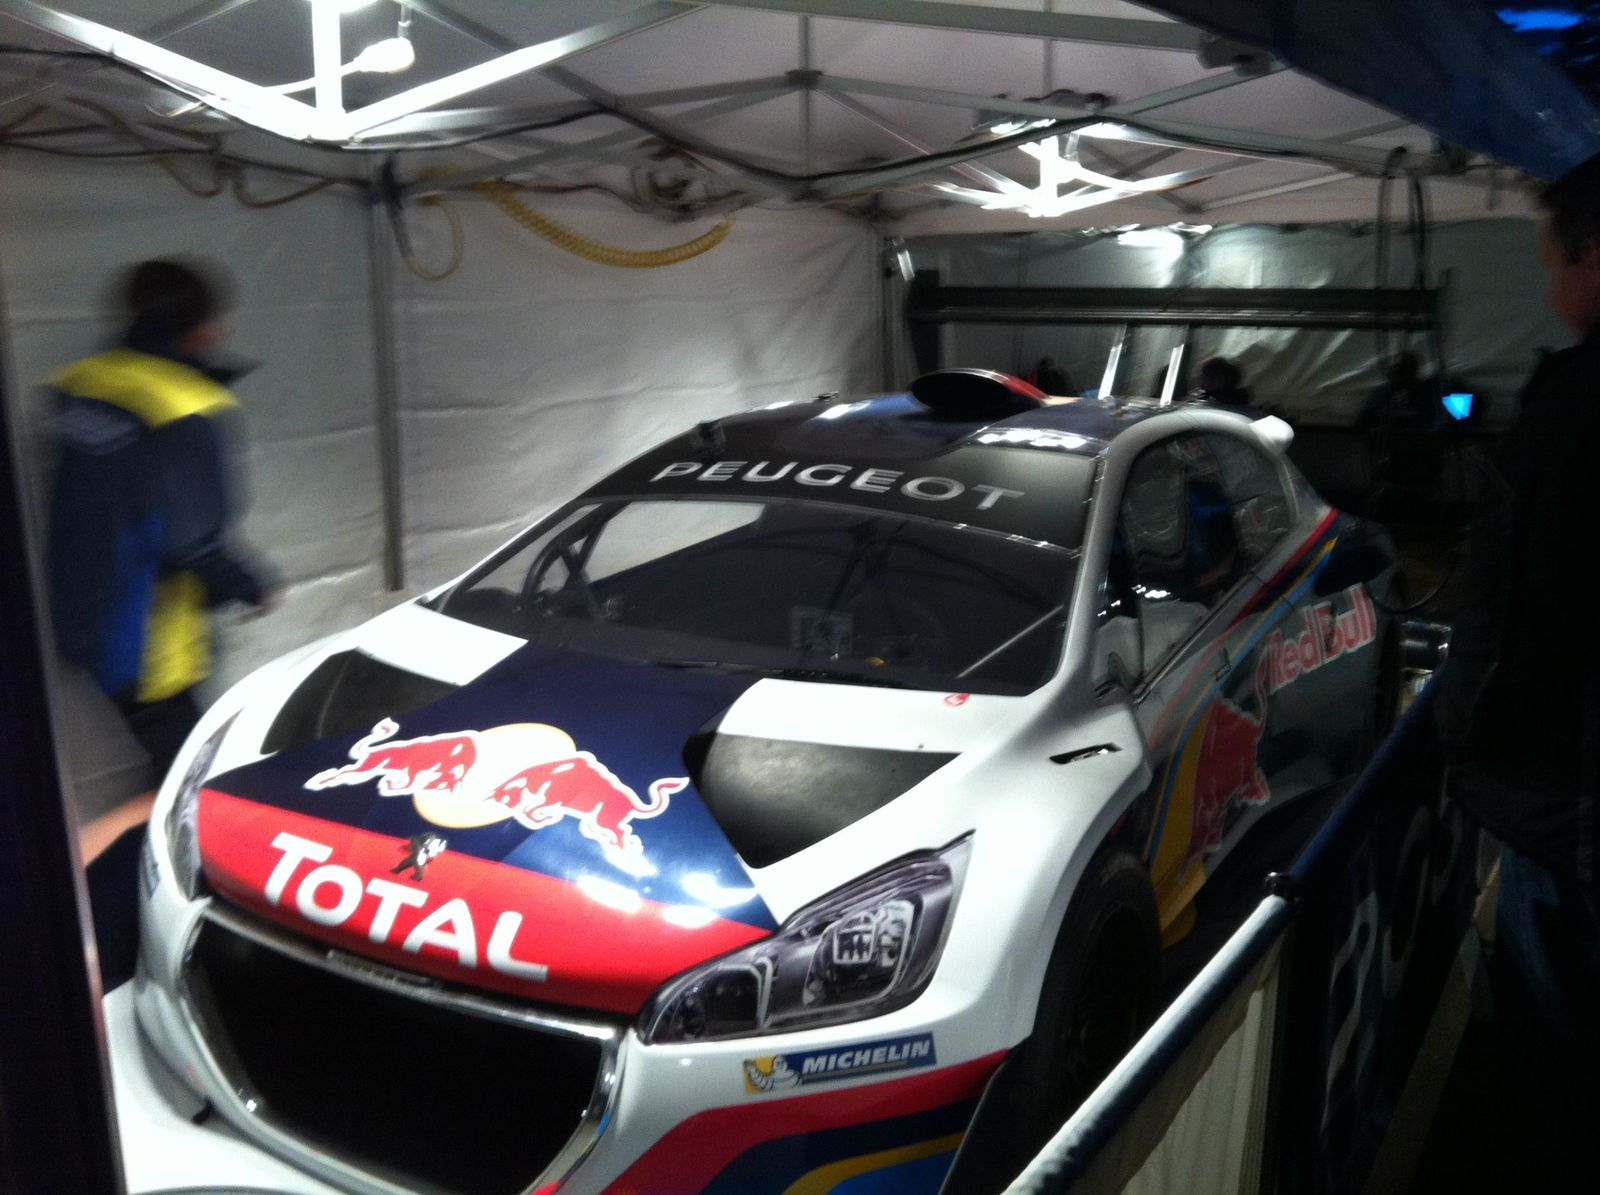 SCOOP Peugeot 208 T16 in live in Pikes Peak Colorado